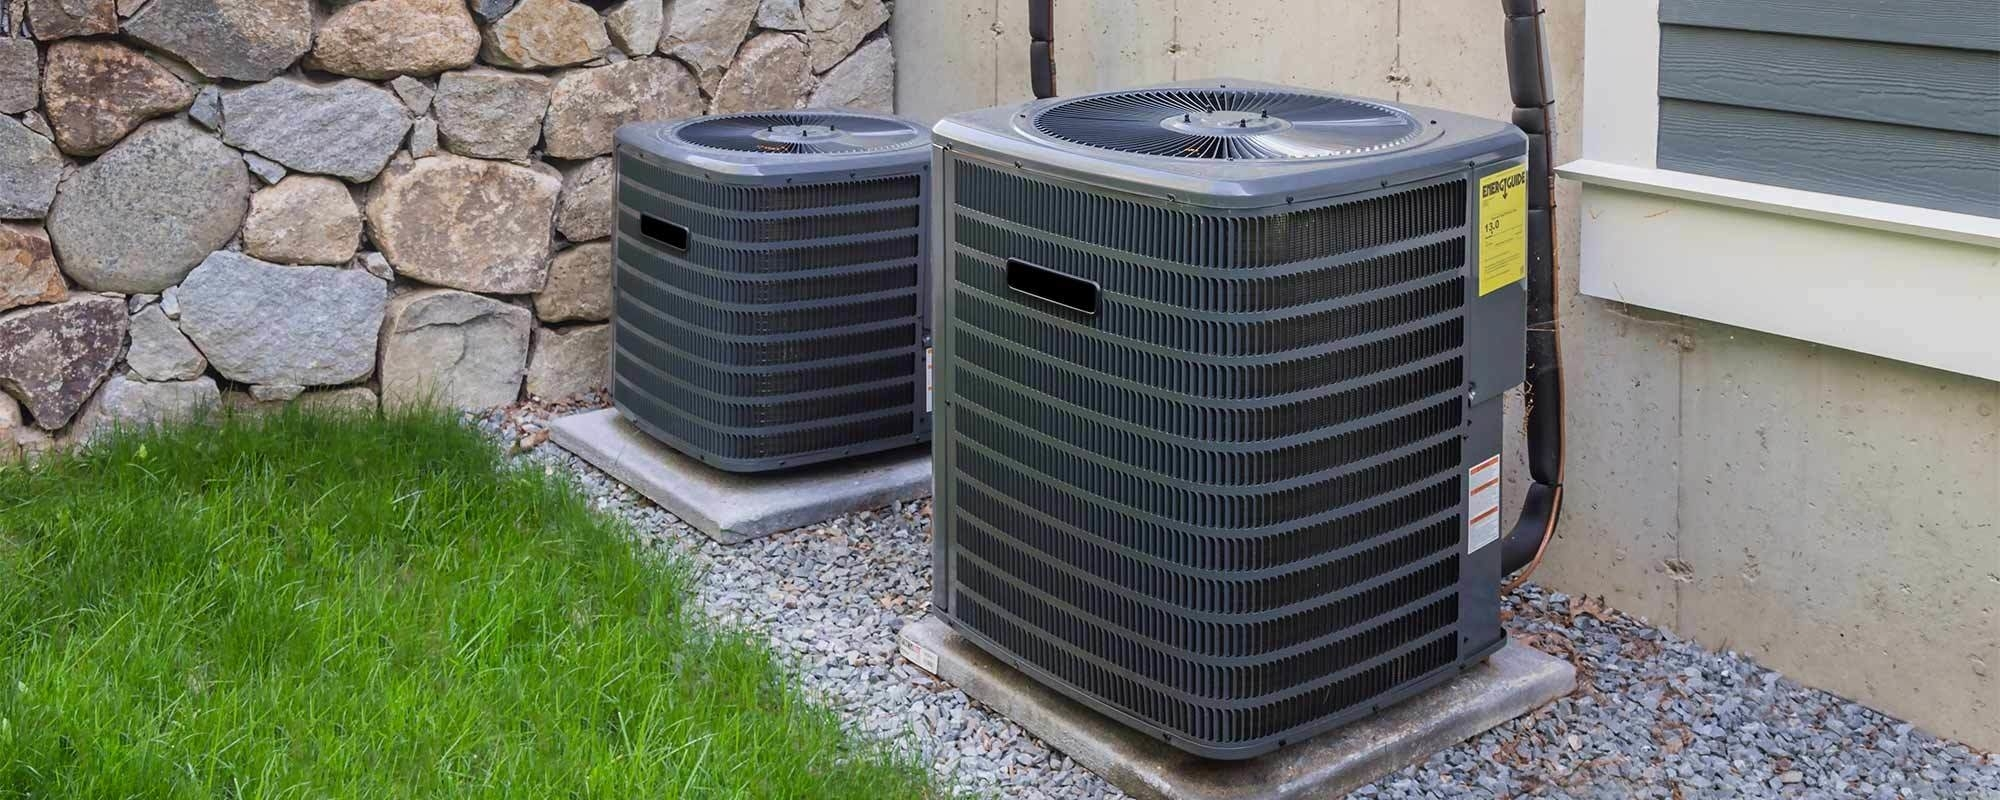 Martens Heating and Cooling in Aylmer